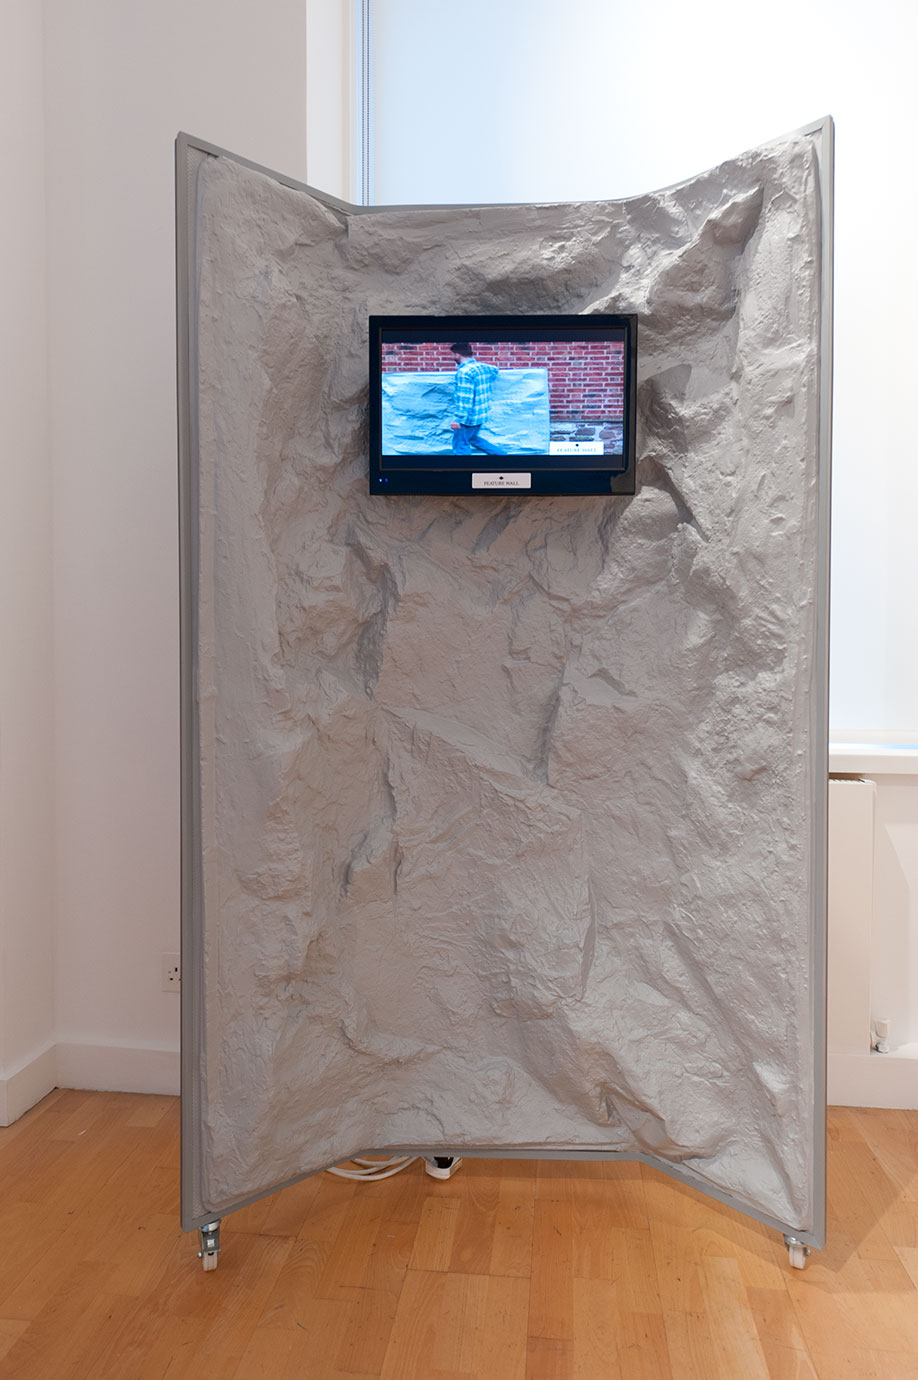 <b>Title:&nbsp;</b>Real Stone Effect <br /><b>Year:&nbsp;</b>2012<br /><b>Medium:&nbsp;</b>HD video, monitor, PVC, steel<br /><b>Size:&nbsp;</b>180 x 105 x 55 cm